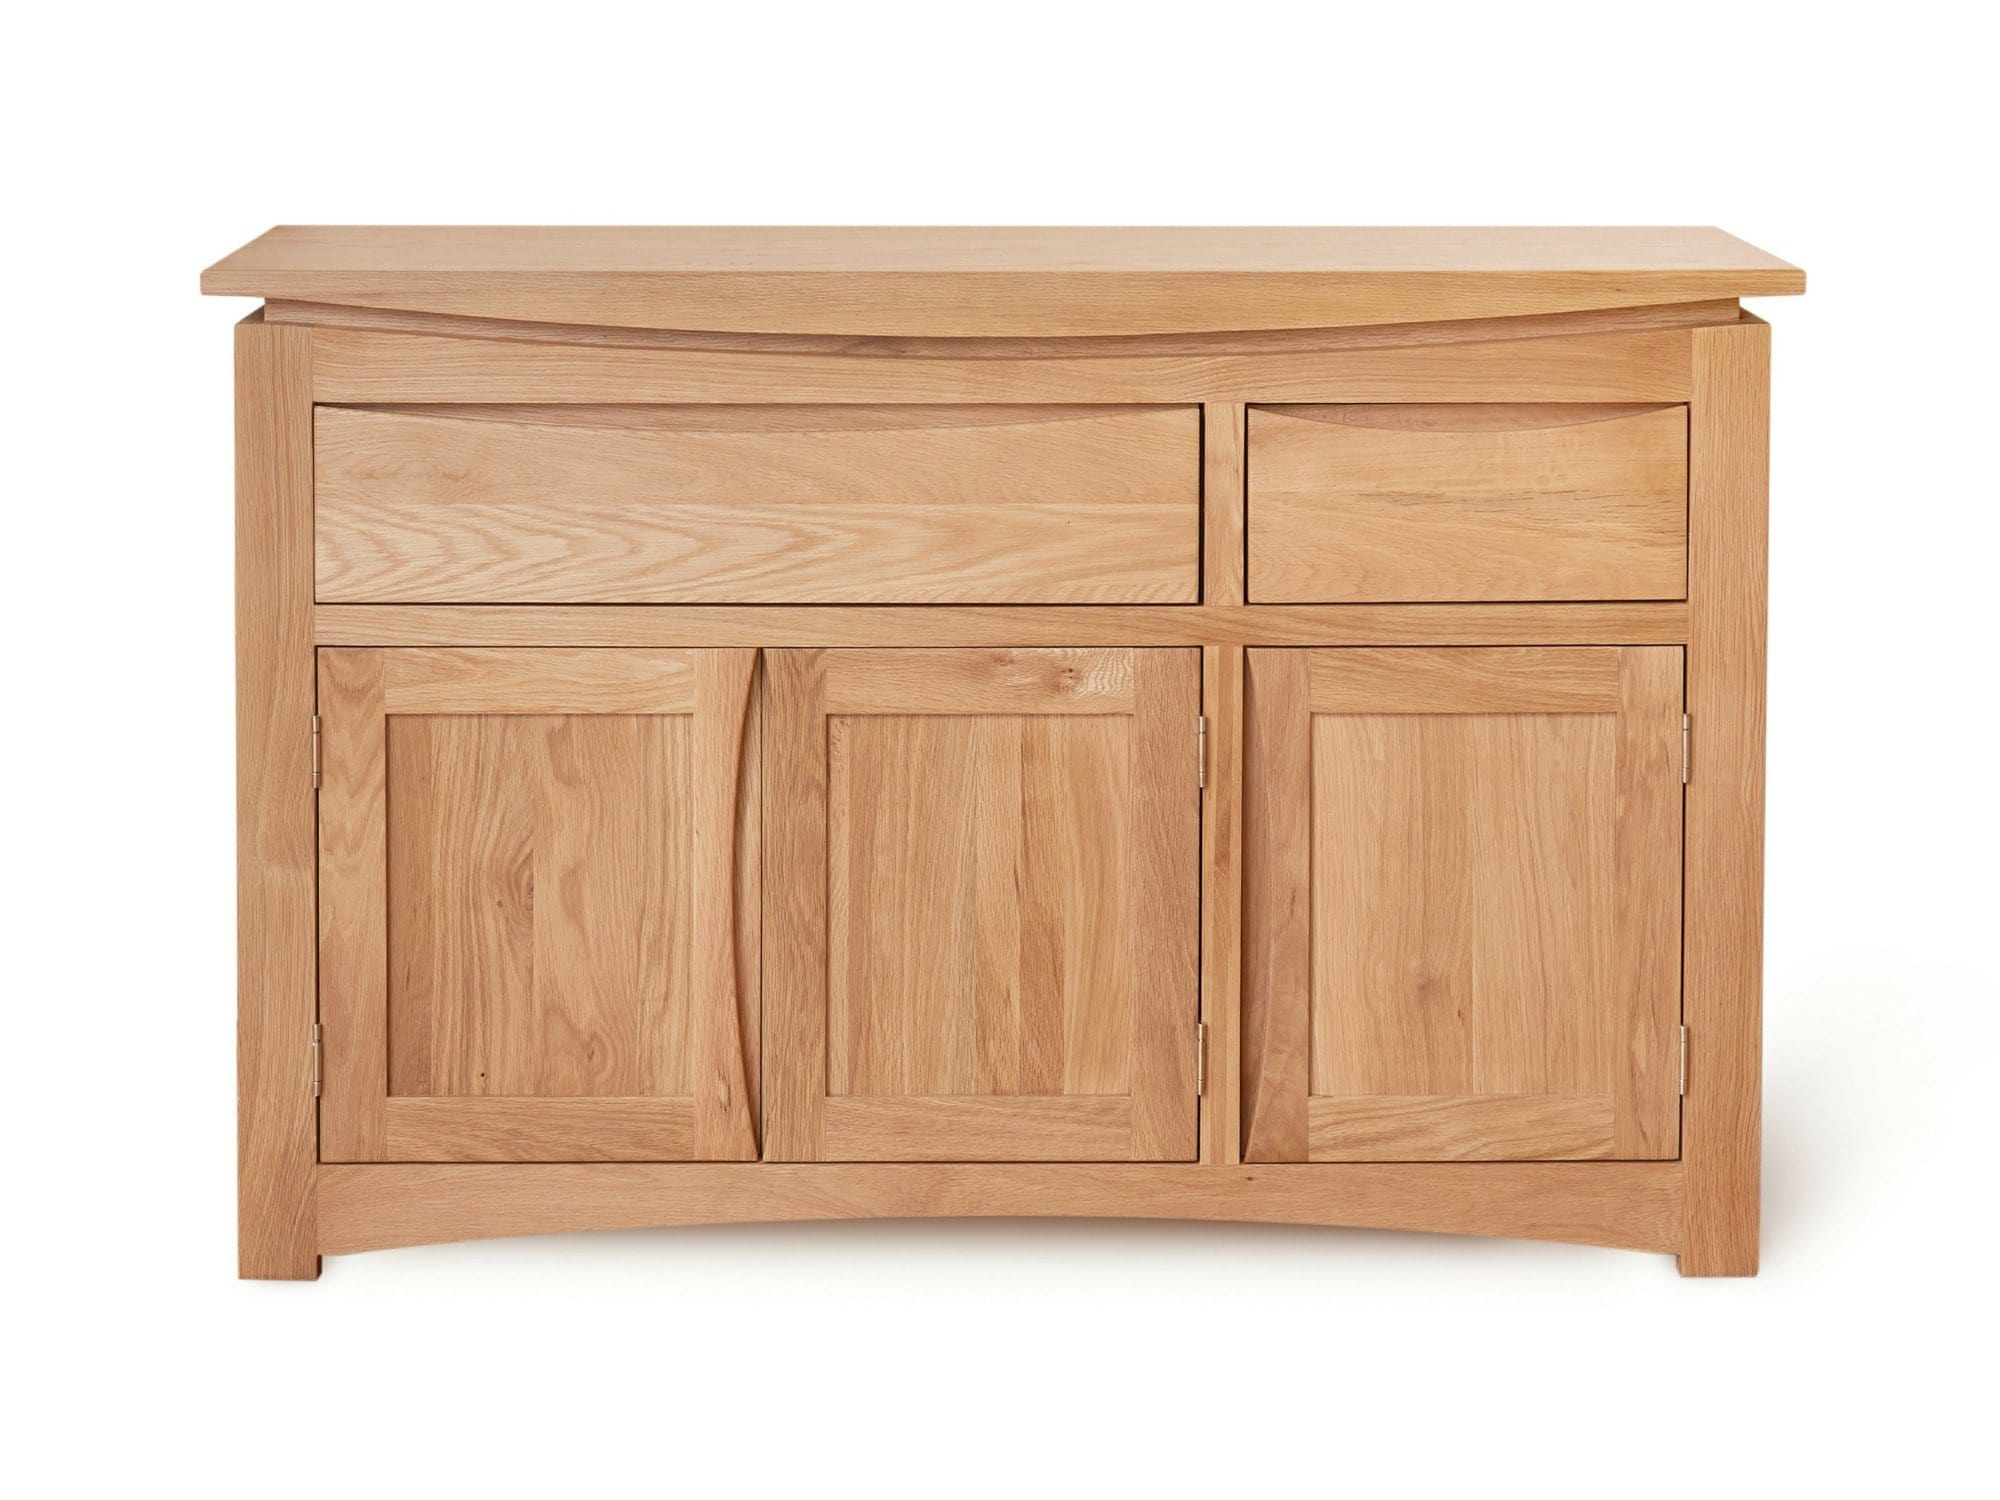 Large sideboard made from light oak, with two storage cabinets plus two drawers